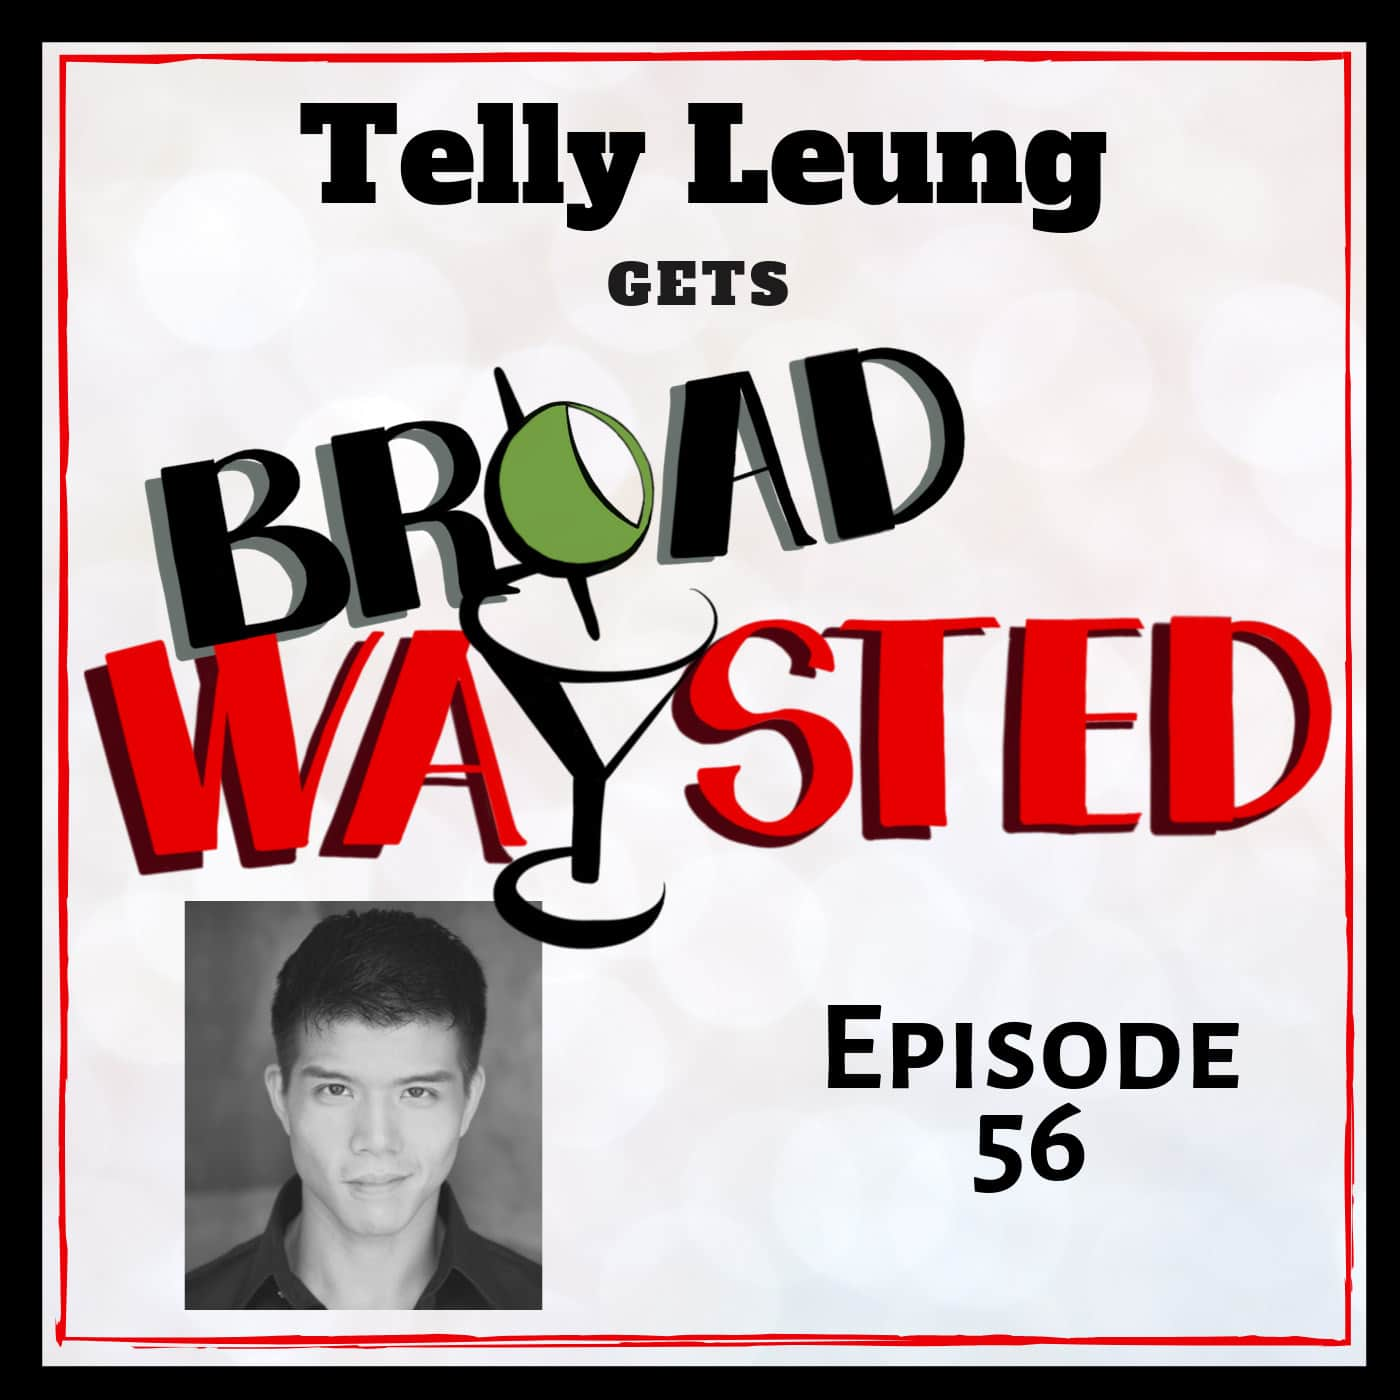 Broadwaysted Ep 56 Telly Leung